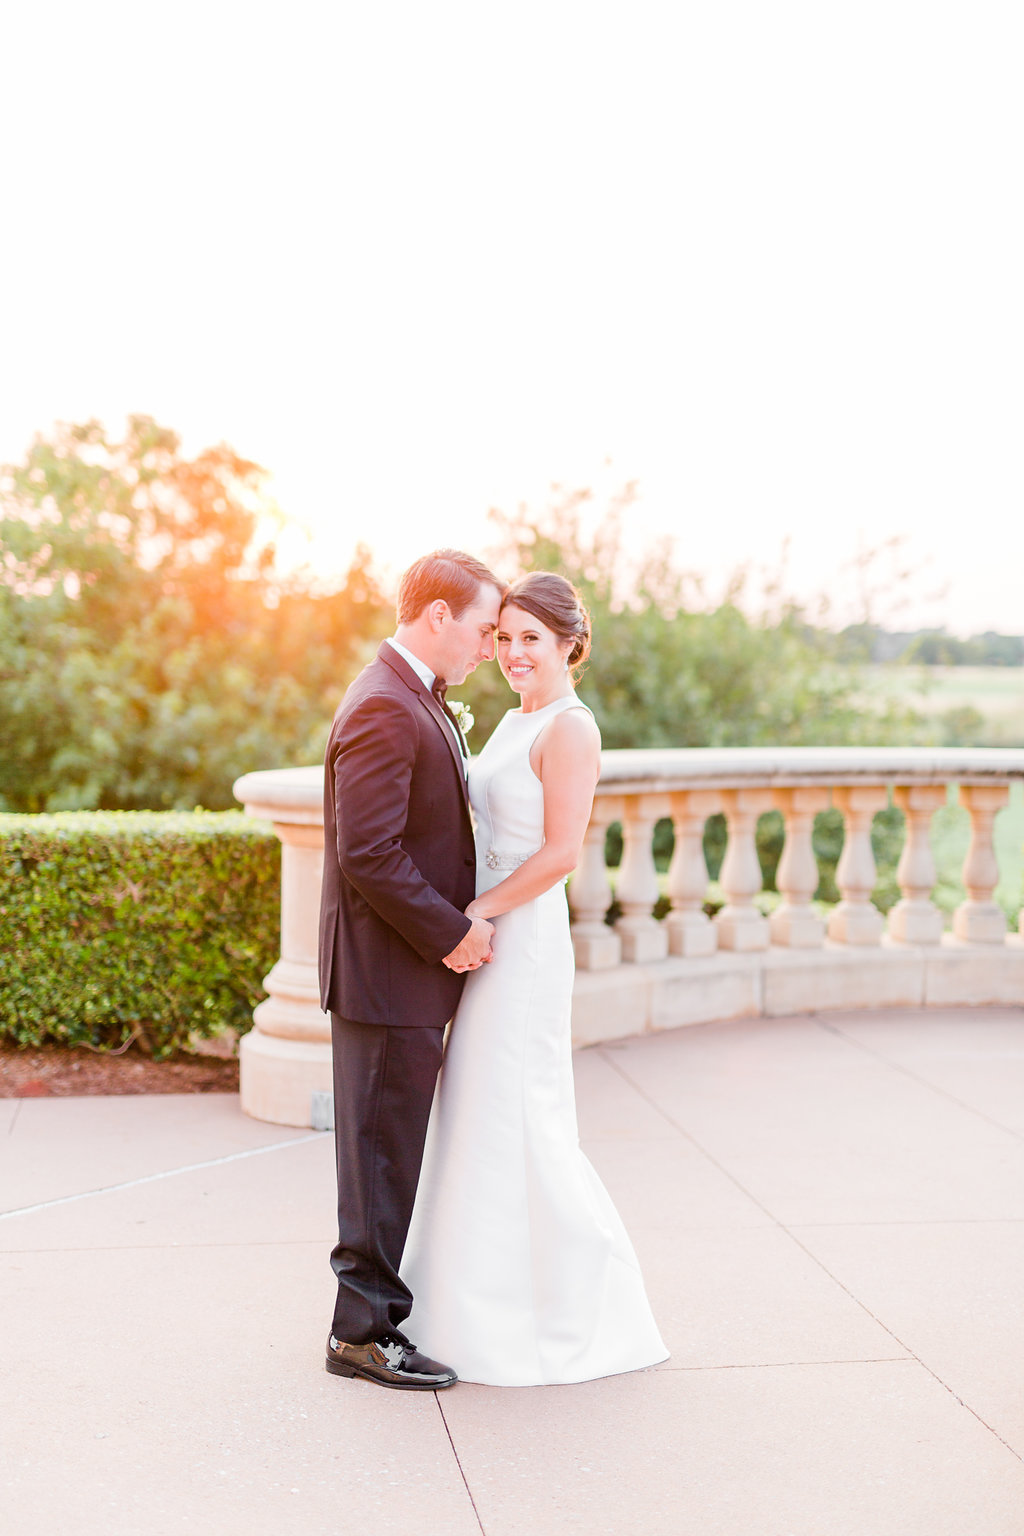 Gallardia-Oklahoma-City-Oklahoma-Wedding-Photographer-Holly-Felts-Photography-Photos-421